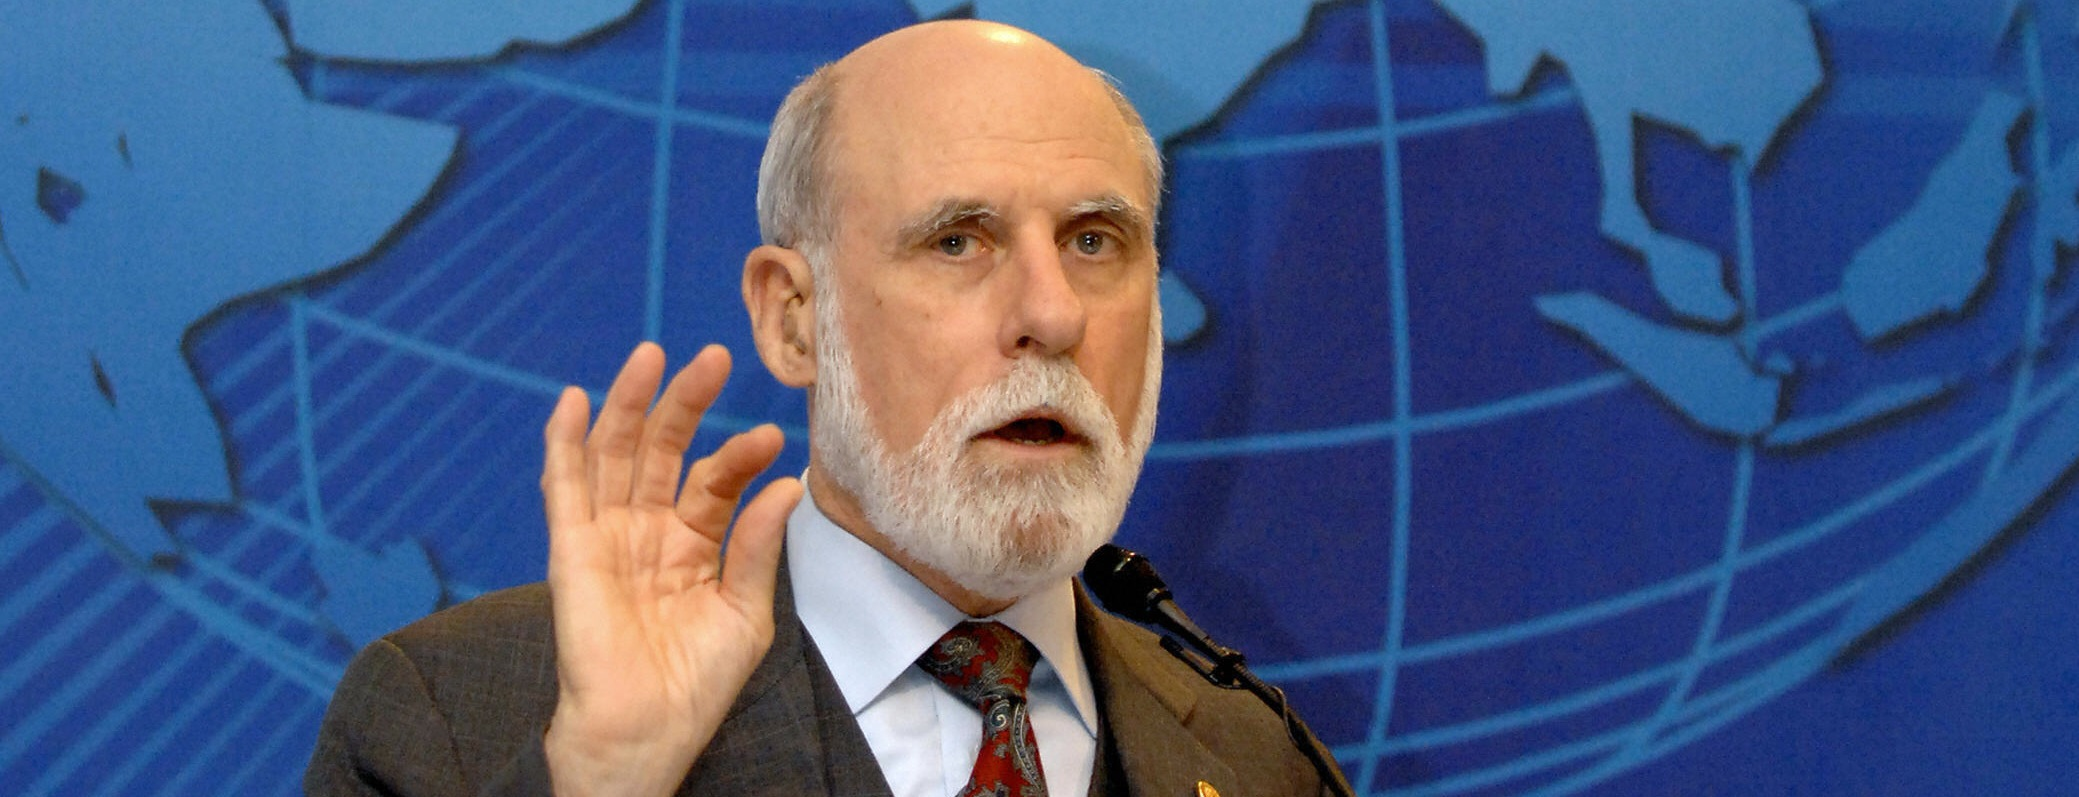 Vint Cerf on the Age of Context and Citizens of the Internet